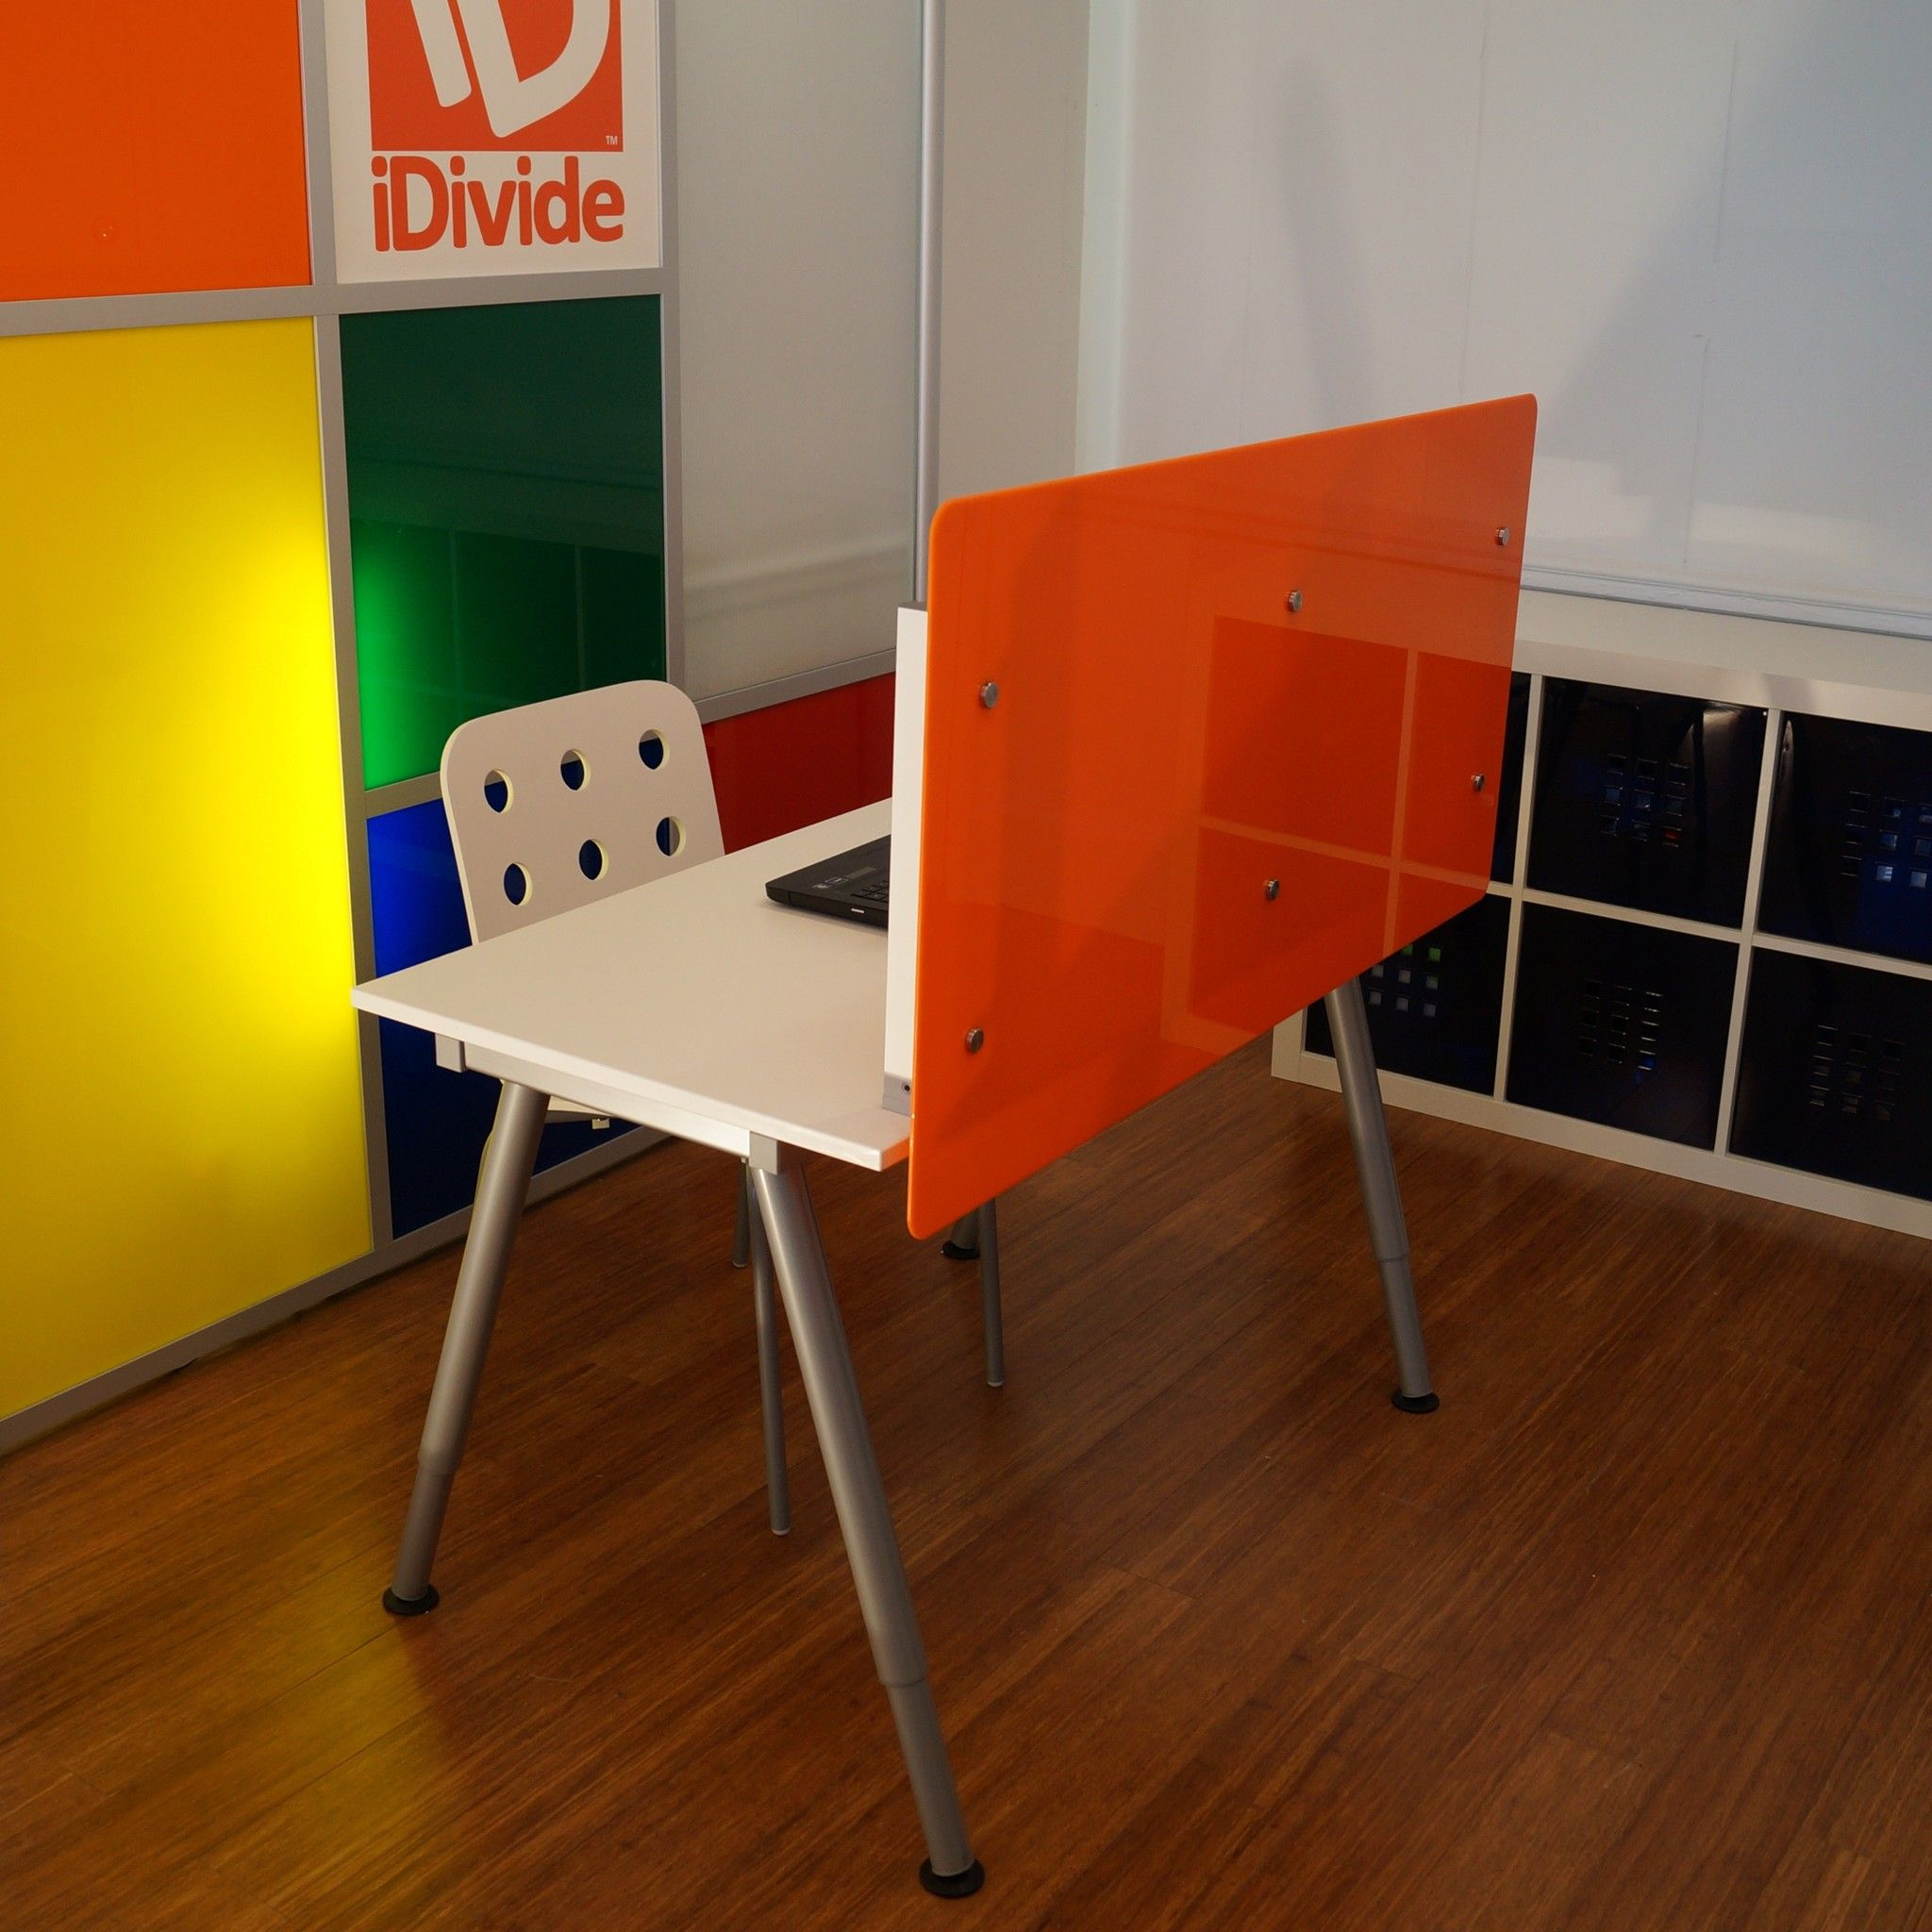 office desk dividers. Office Desk Divider Screens - Check More At Http://www.gameintown. Dividers I